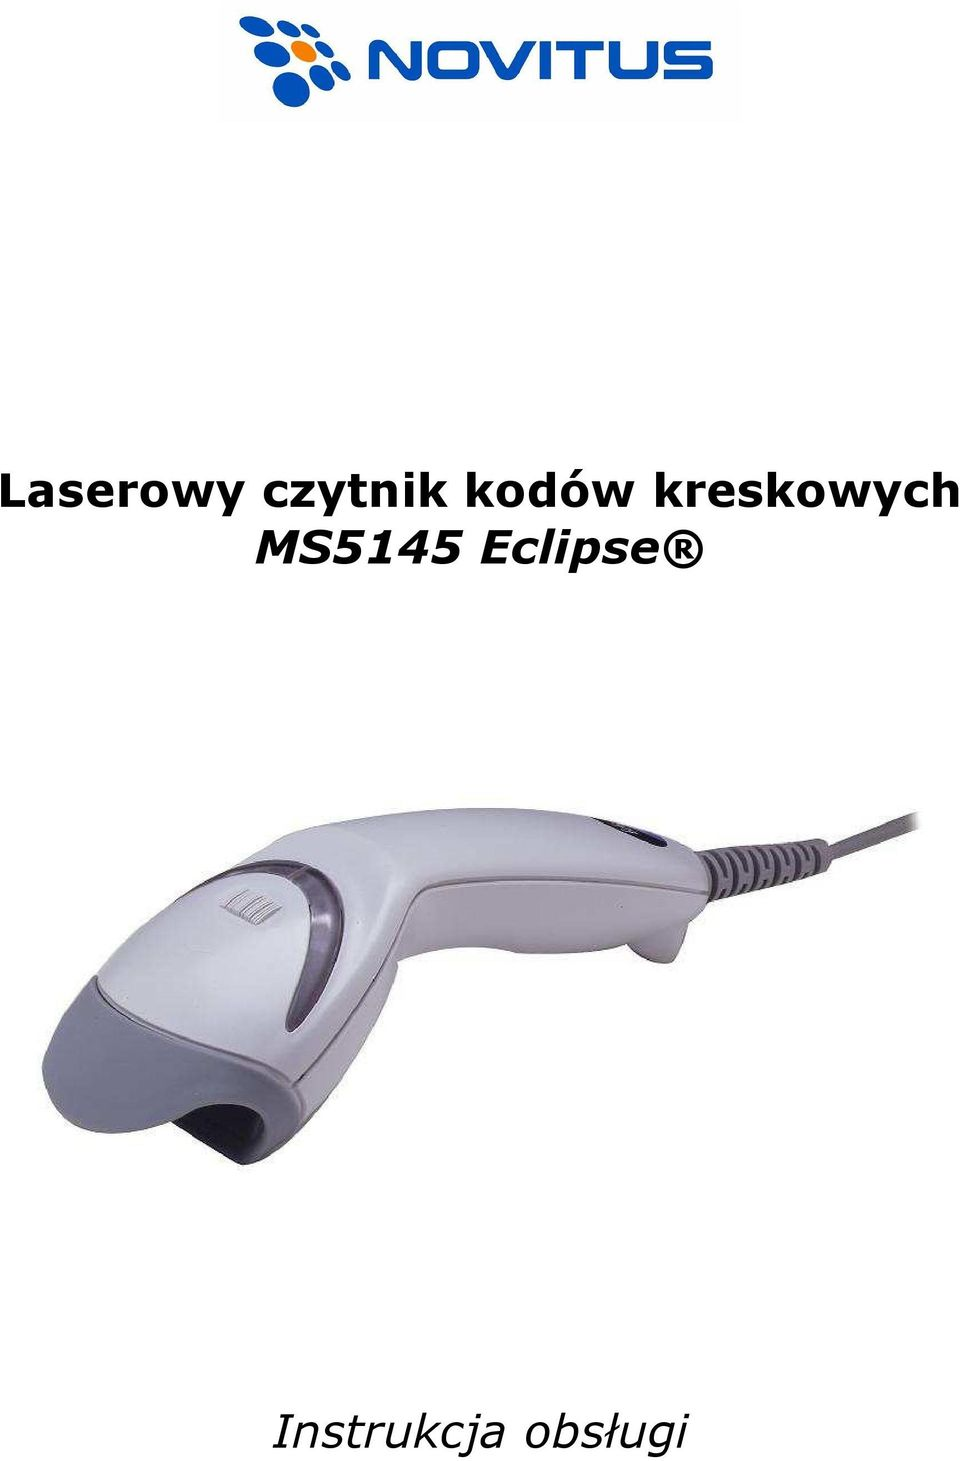 MS5145 Eclipse